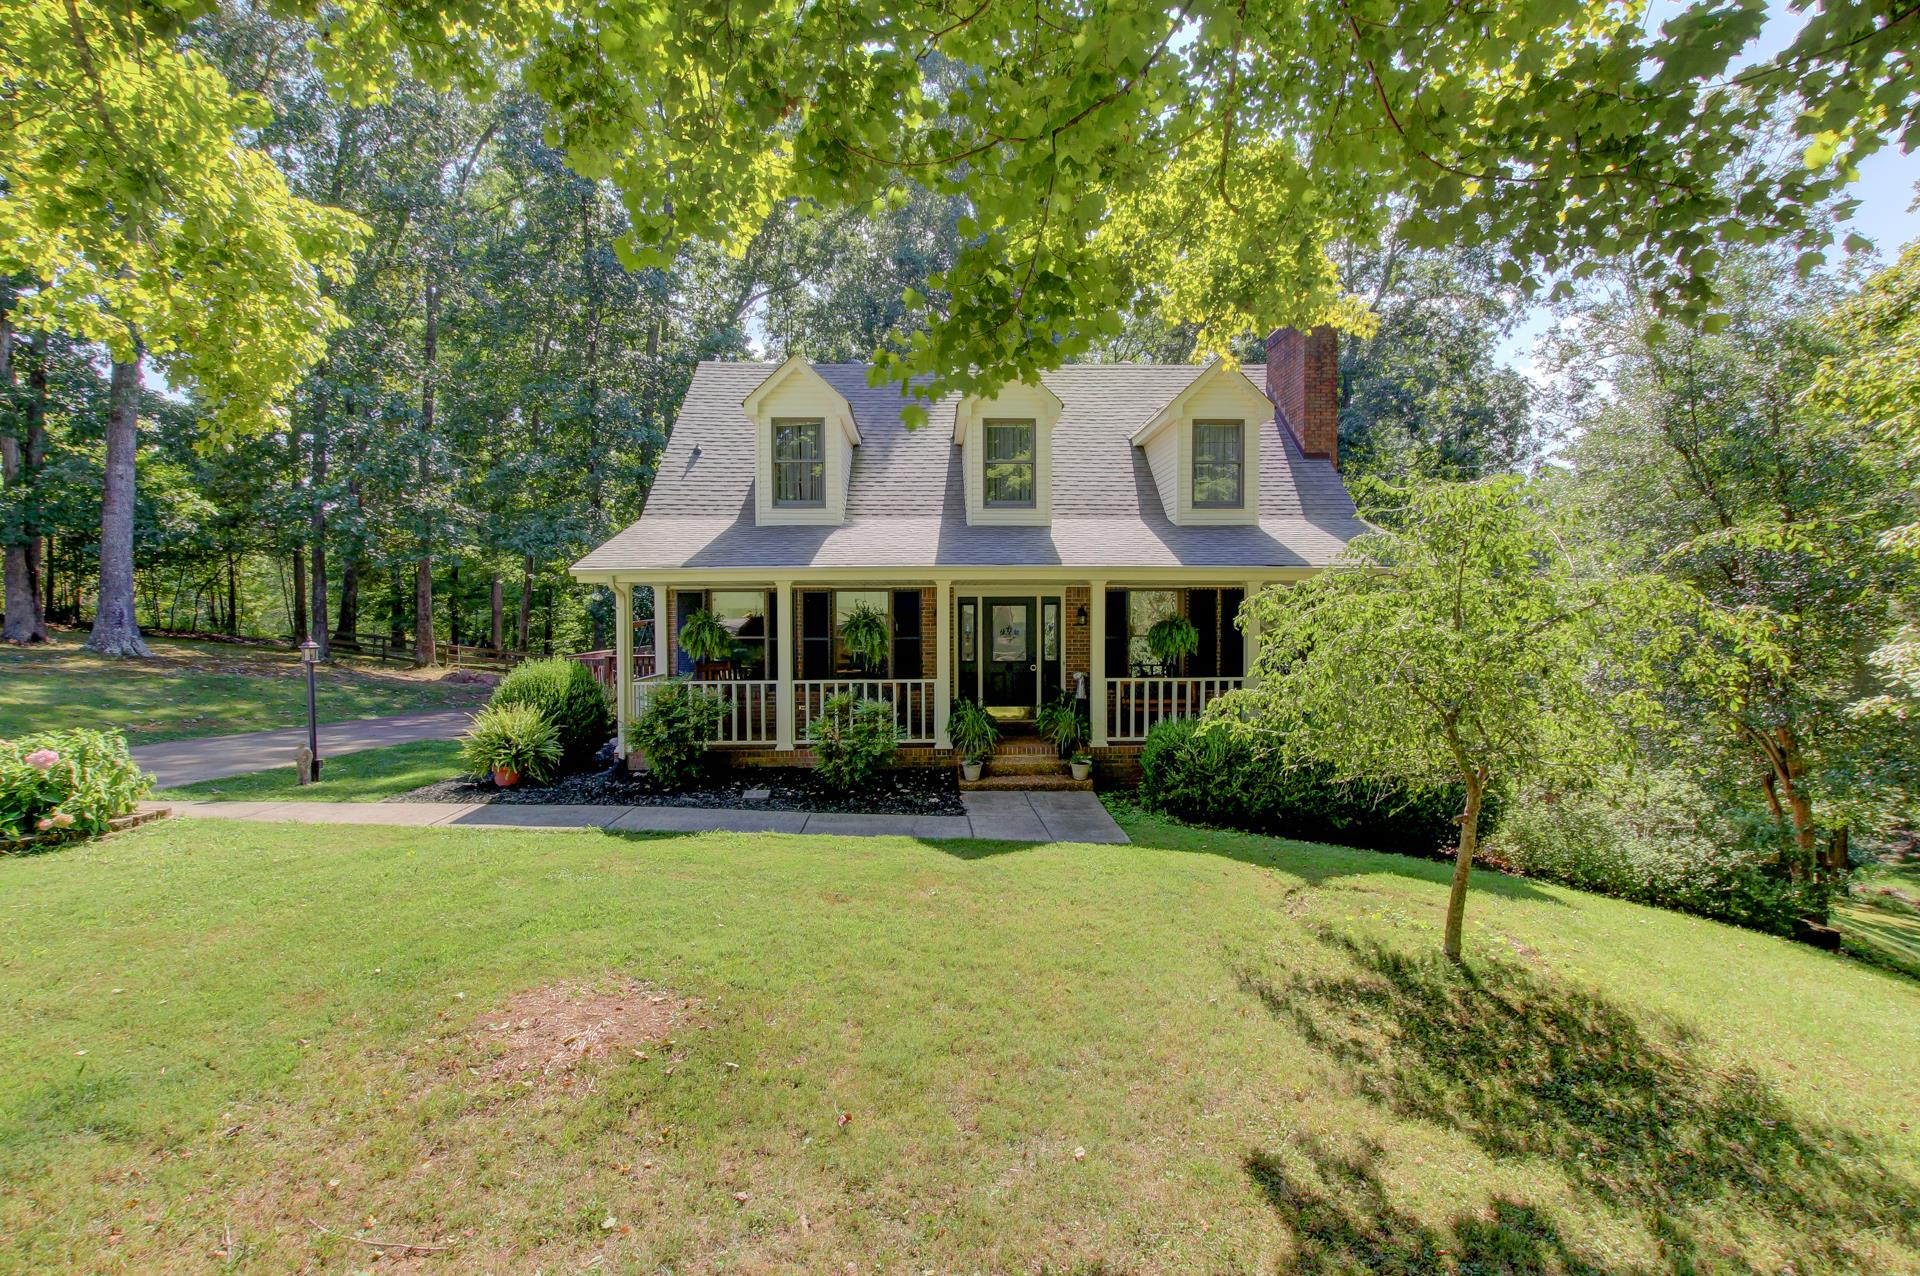 2840 Scenic Dr, Clarksville in Montgomery County County, TN 37043 Home for Sale